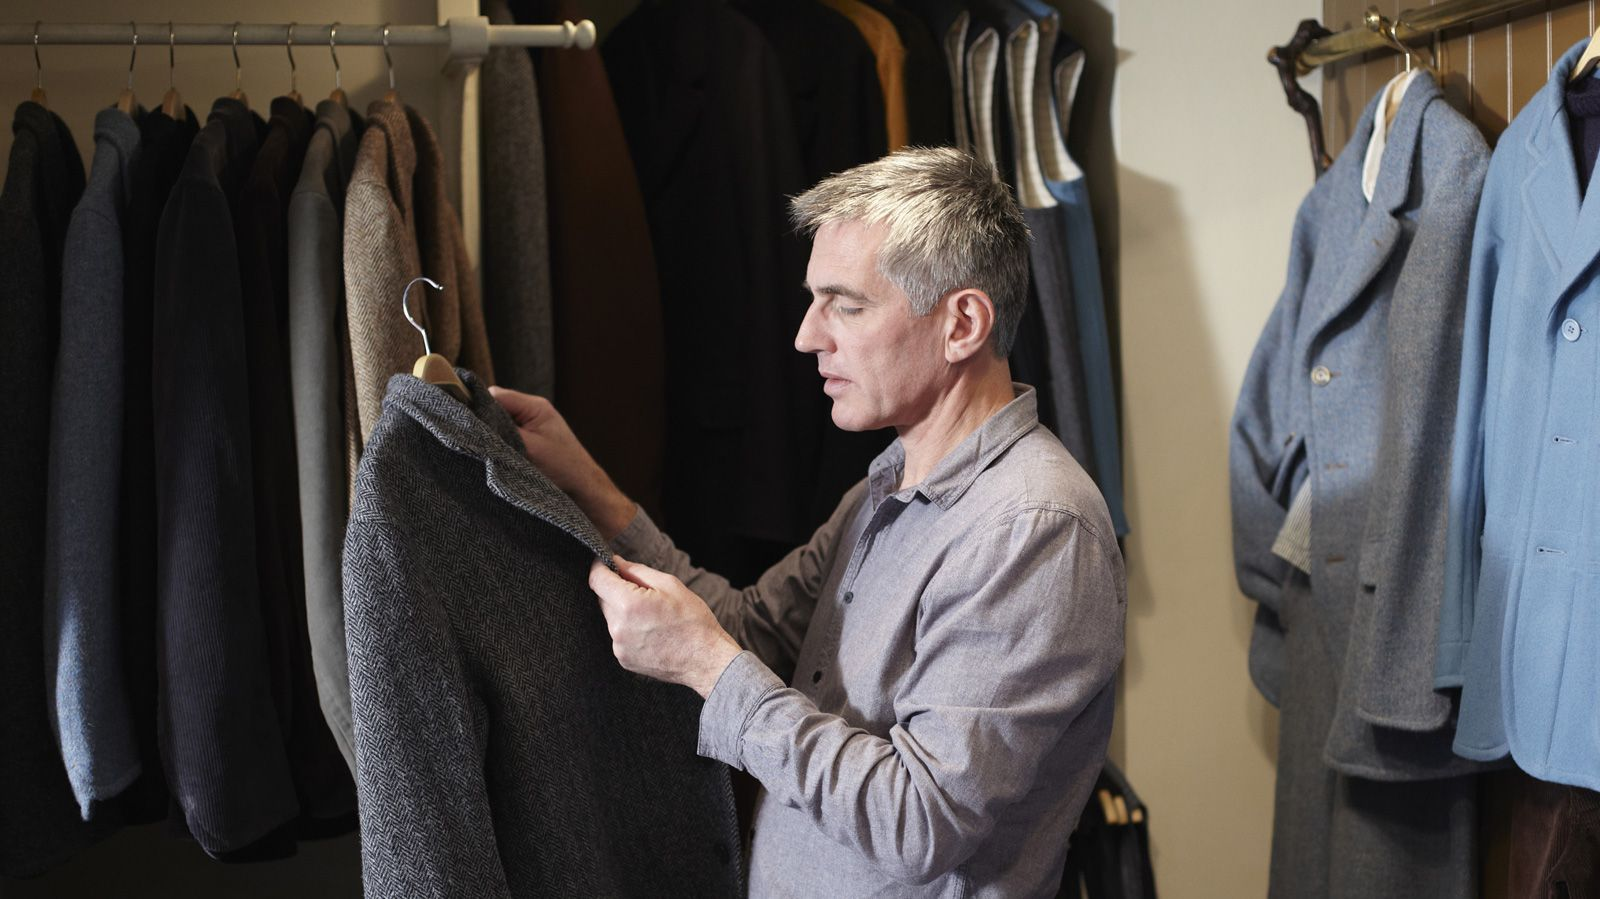 older man shopping | Product Development: Team Awesome | Pinterest ...